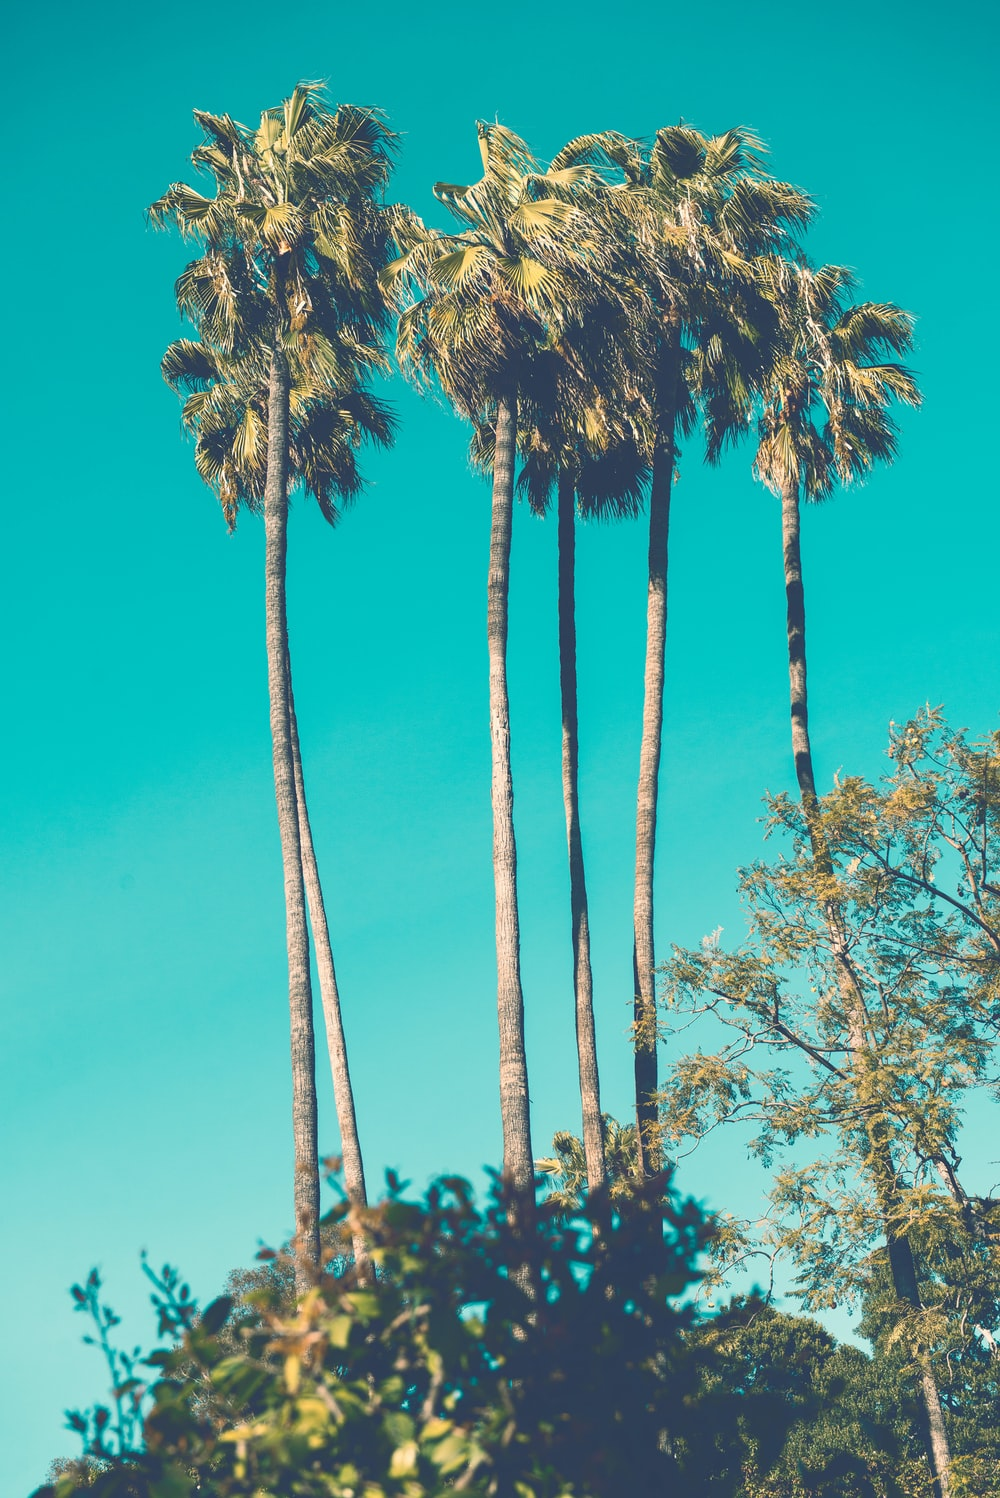 five green-and-brown palm trees